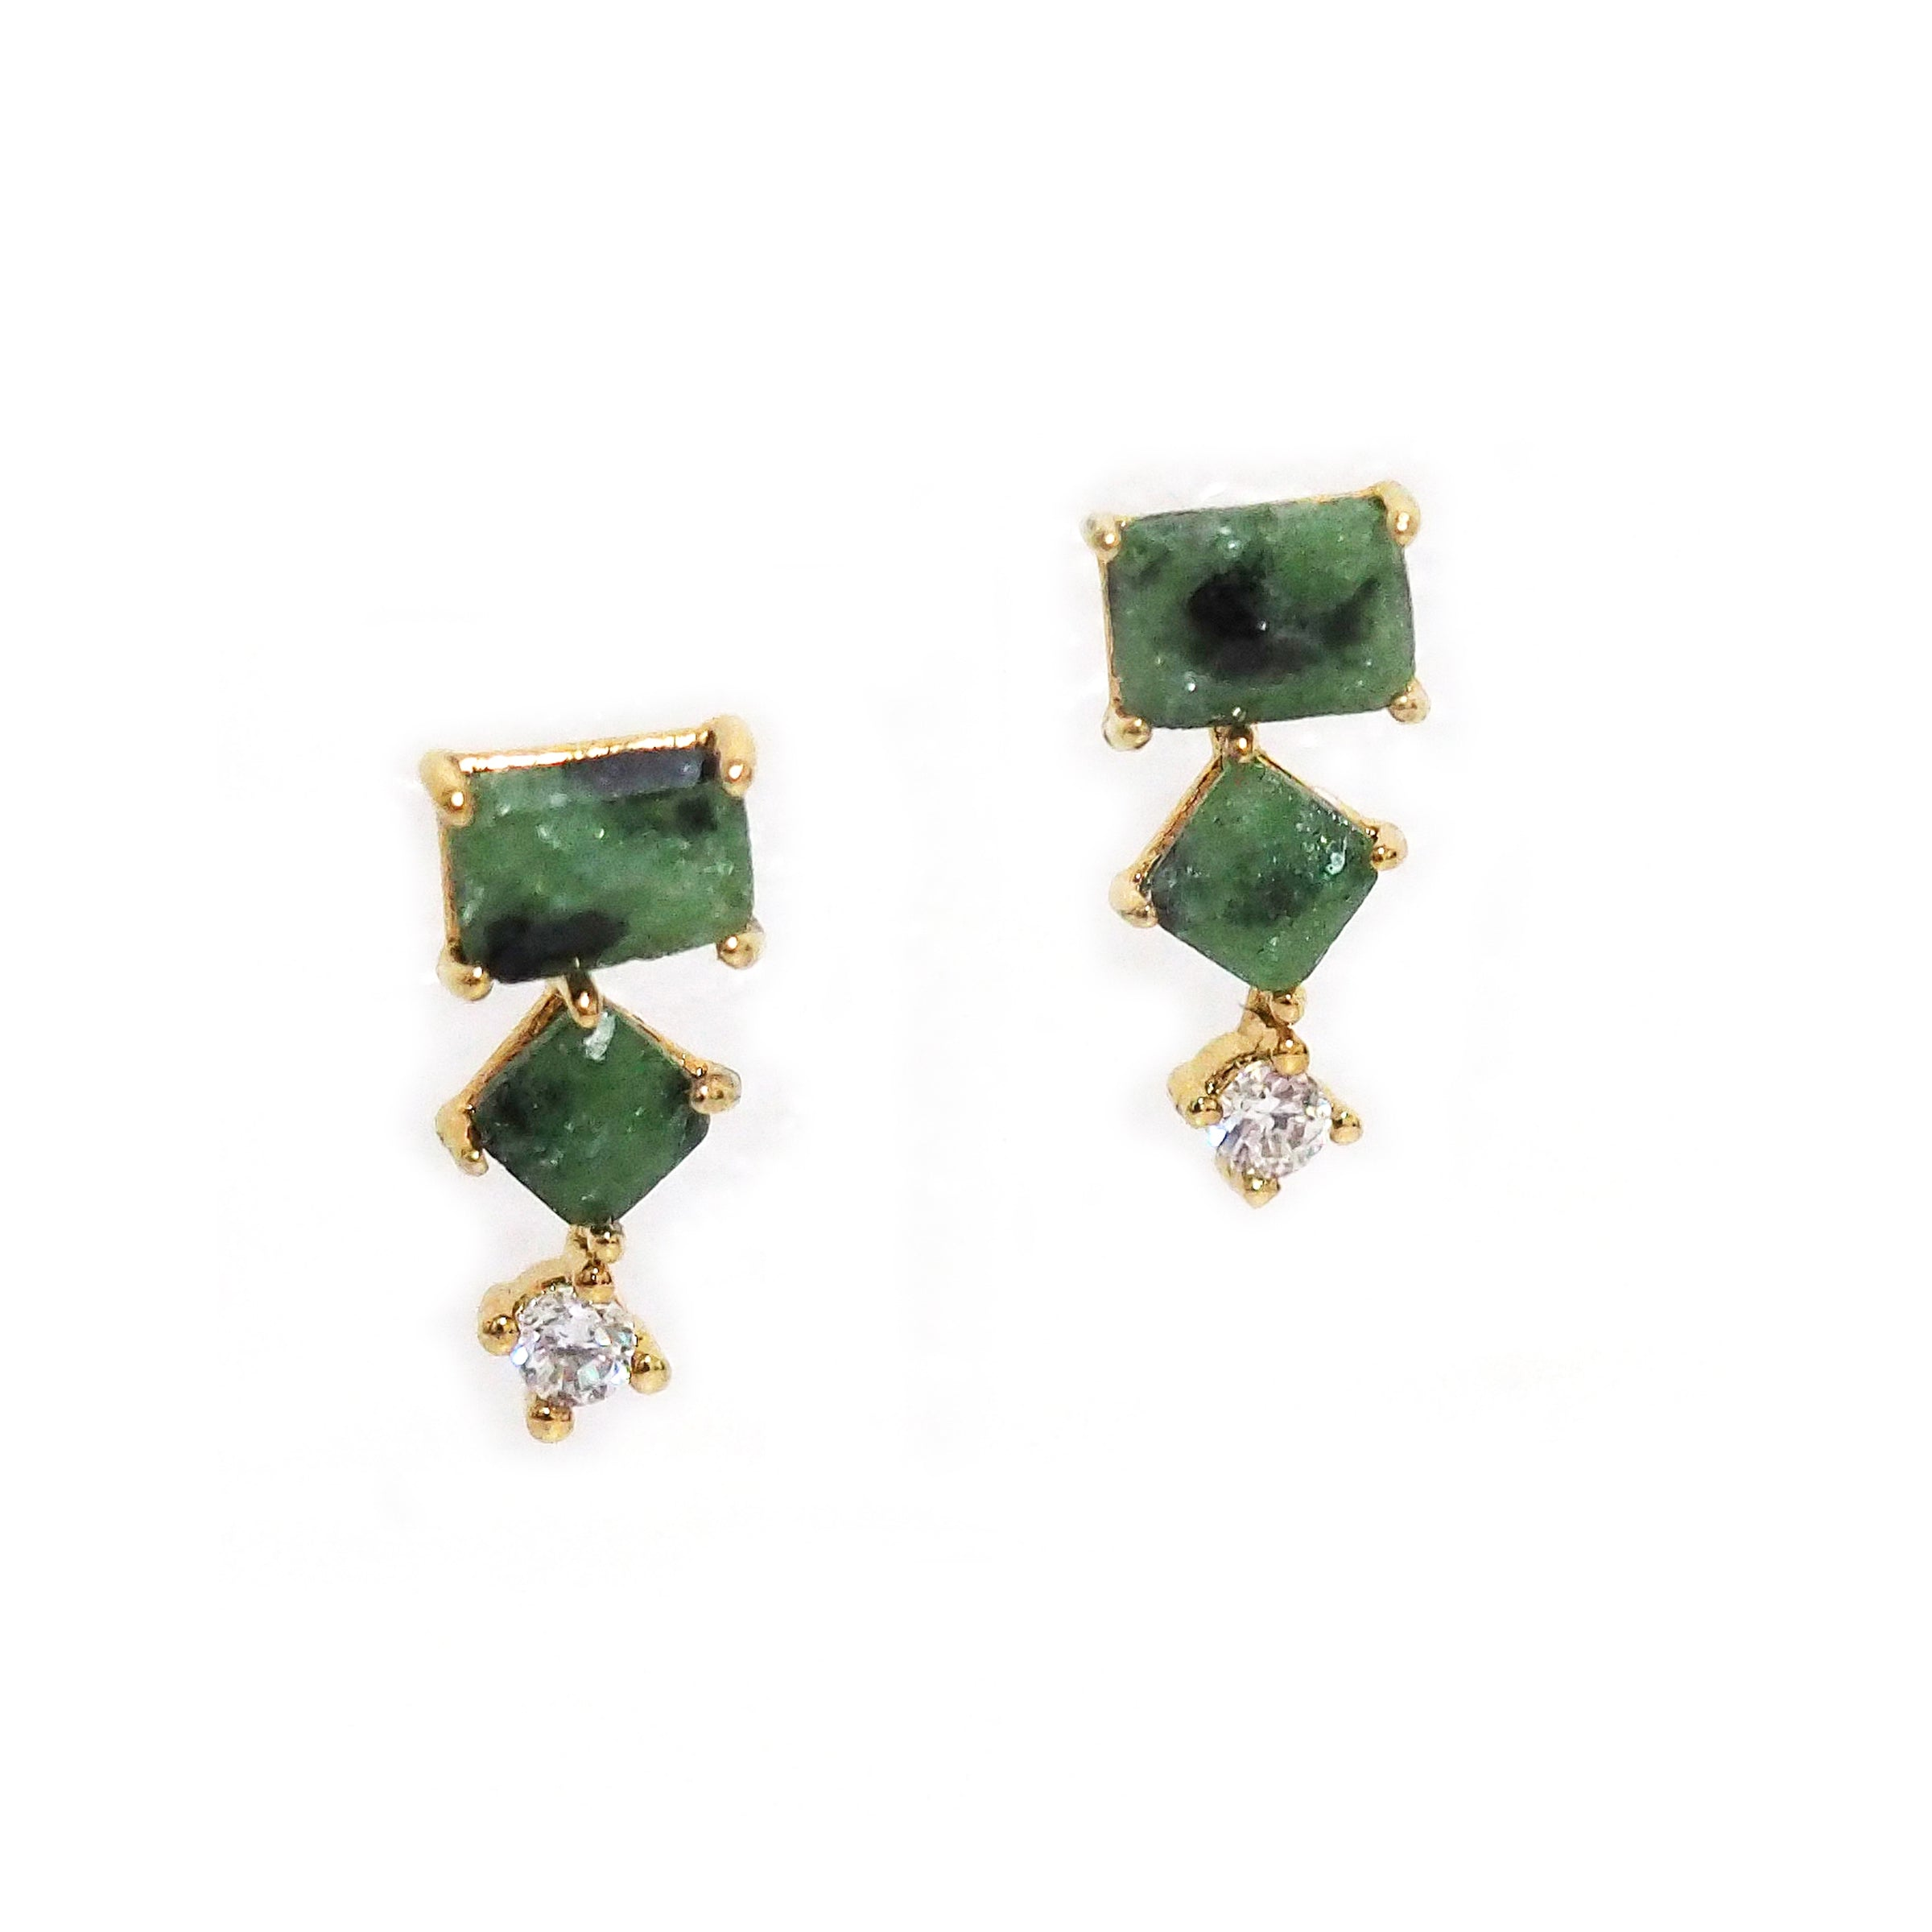 Green Glass and CZ Three Stone Earrings, Gold Tone, by Tai Design